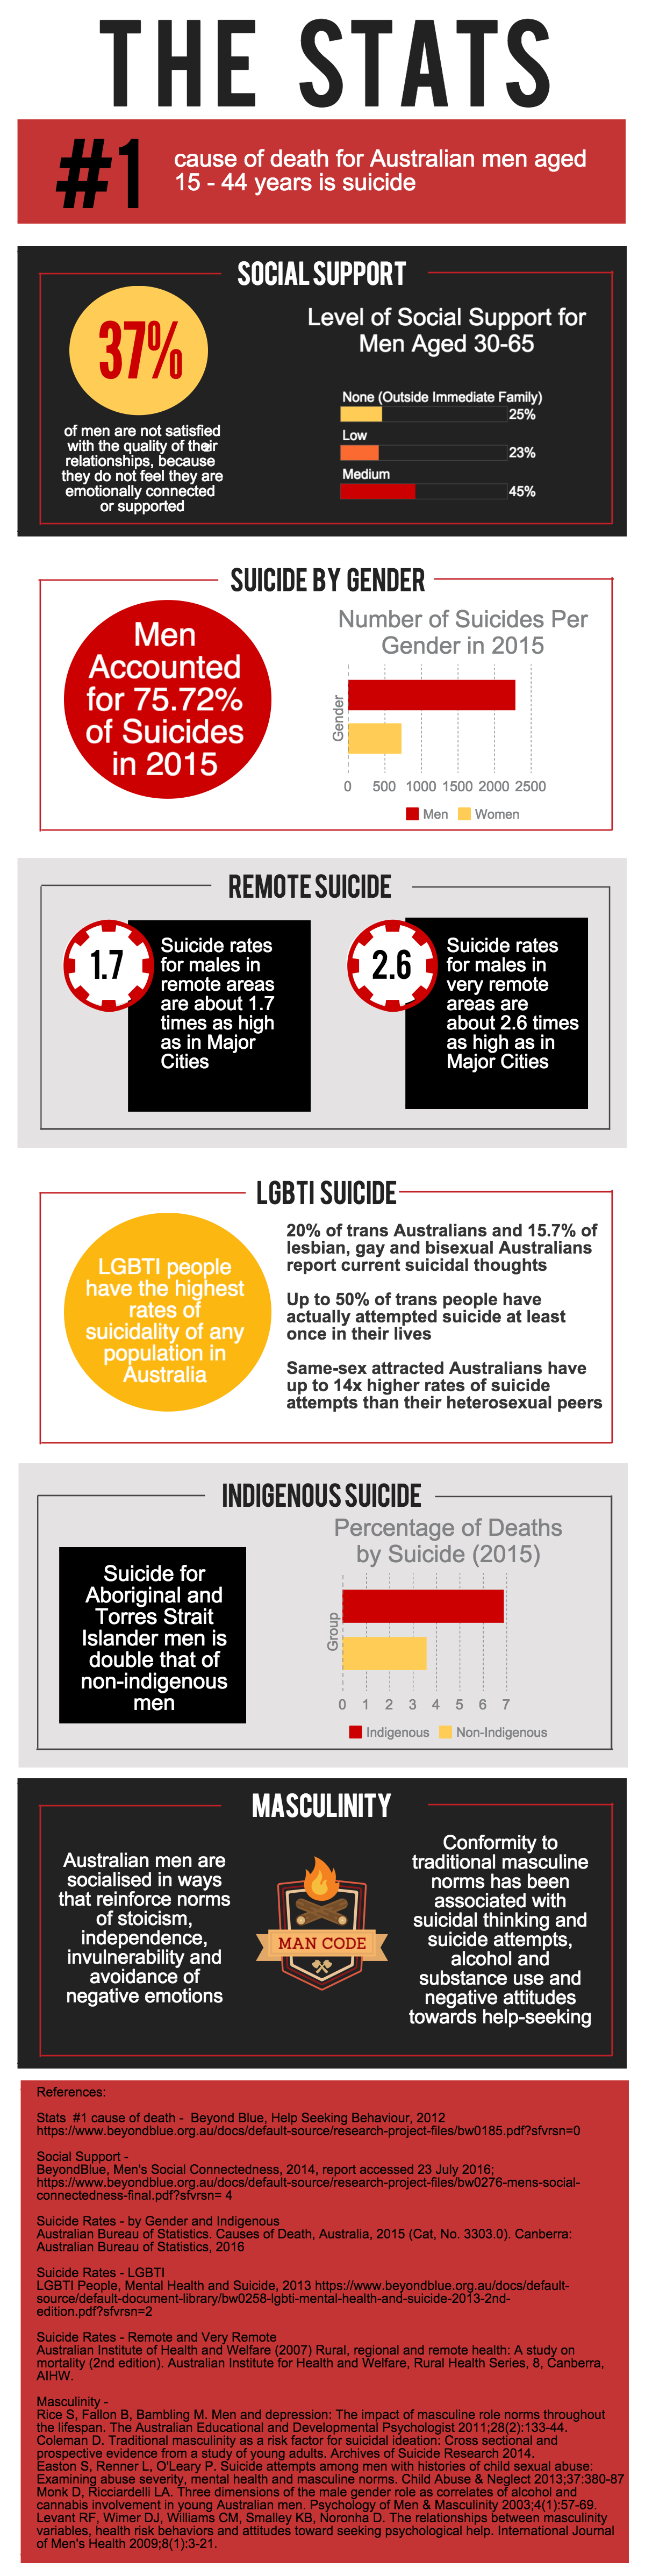 The Stats, Man Up, suicide, mental health, men's mental health